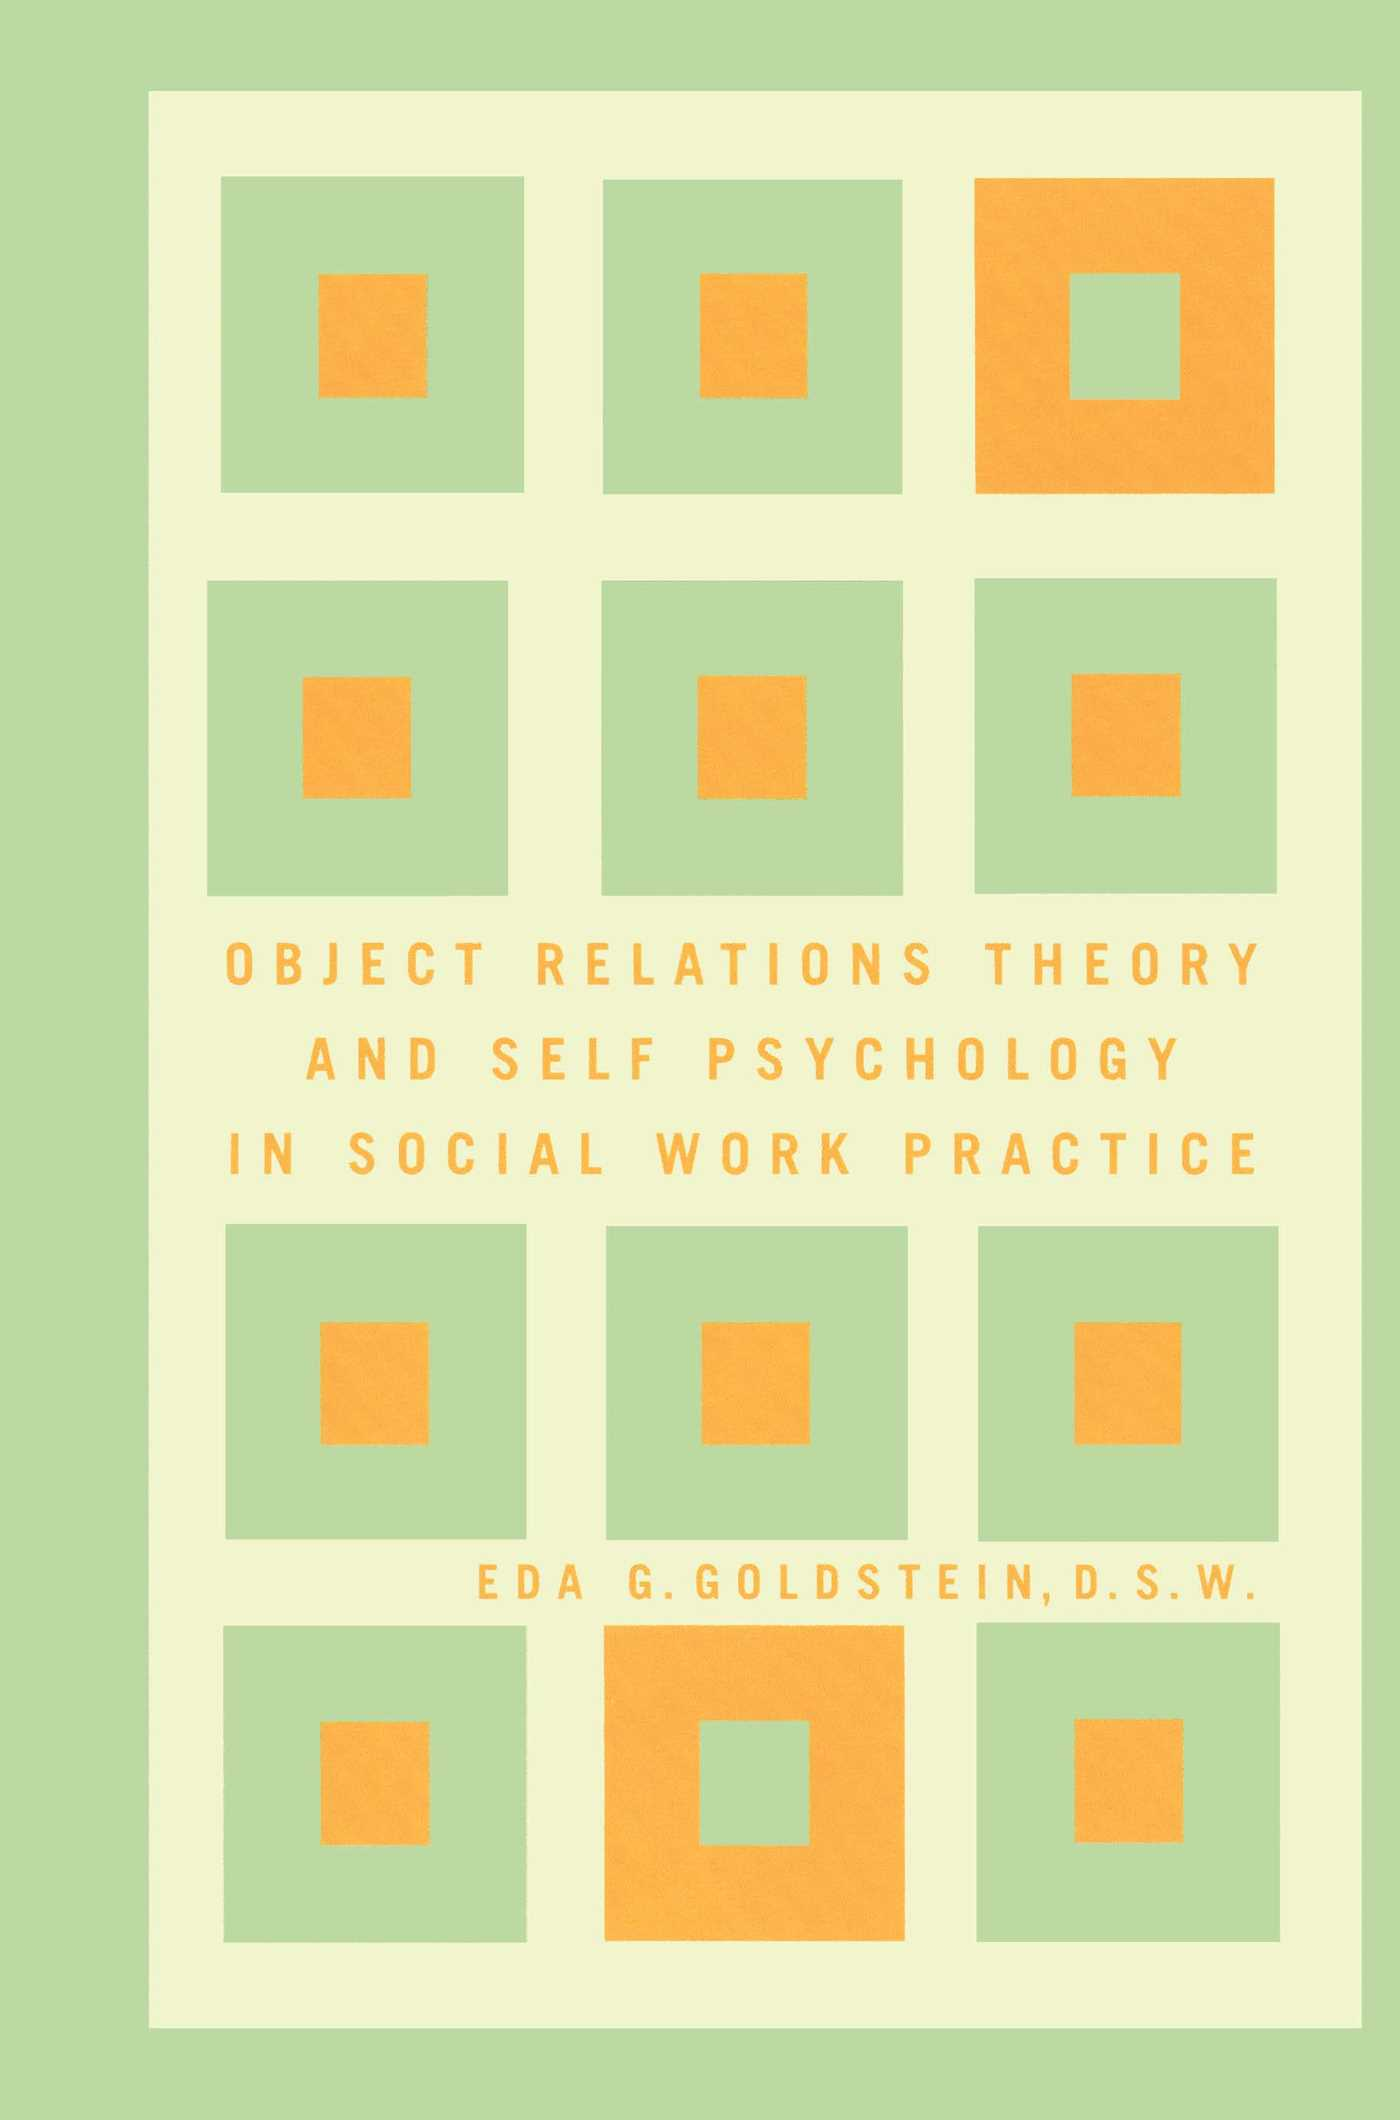 Object relations theory and self psychology in soc ebook by eda book cover image jpg object relations theory and self psychology in soc ebook 9781451603187 fandeluxe Gallery